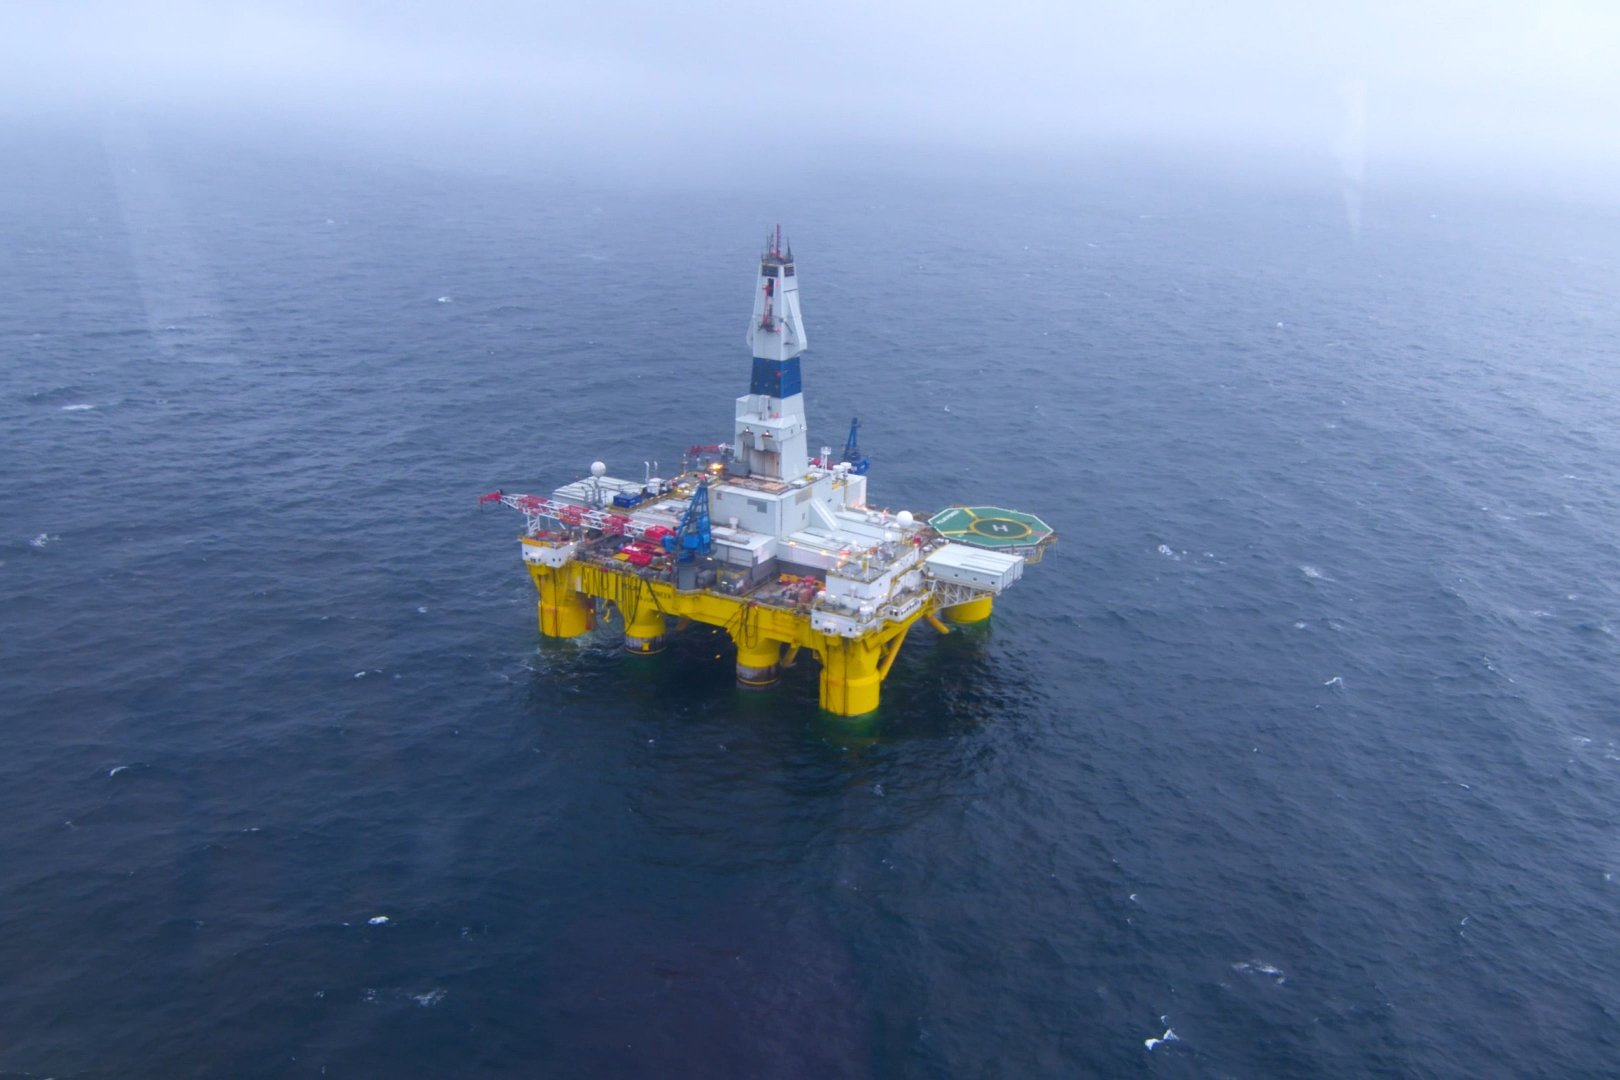 Trump administration moves to relax Obama-era safety rules for Arctic Ocean oil drilling